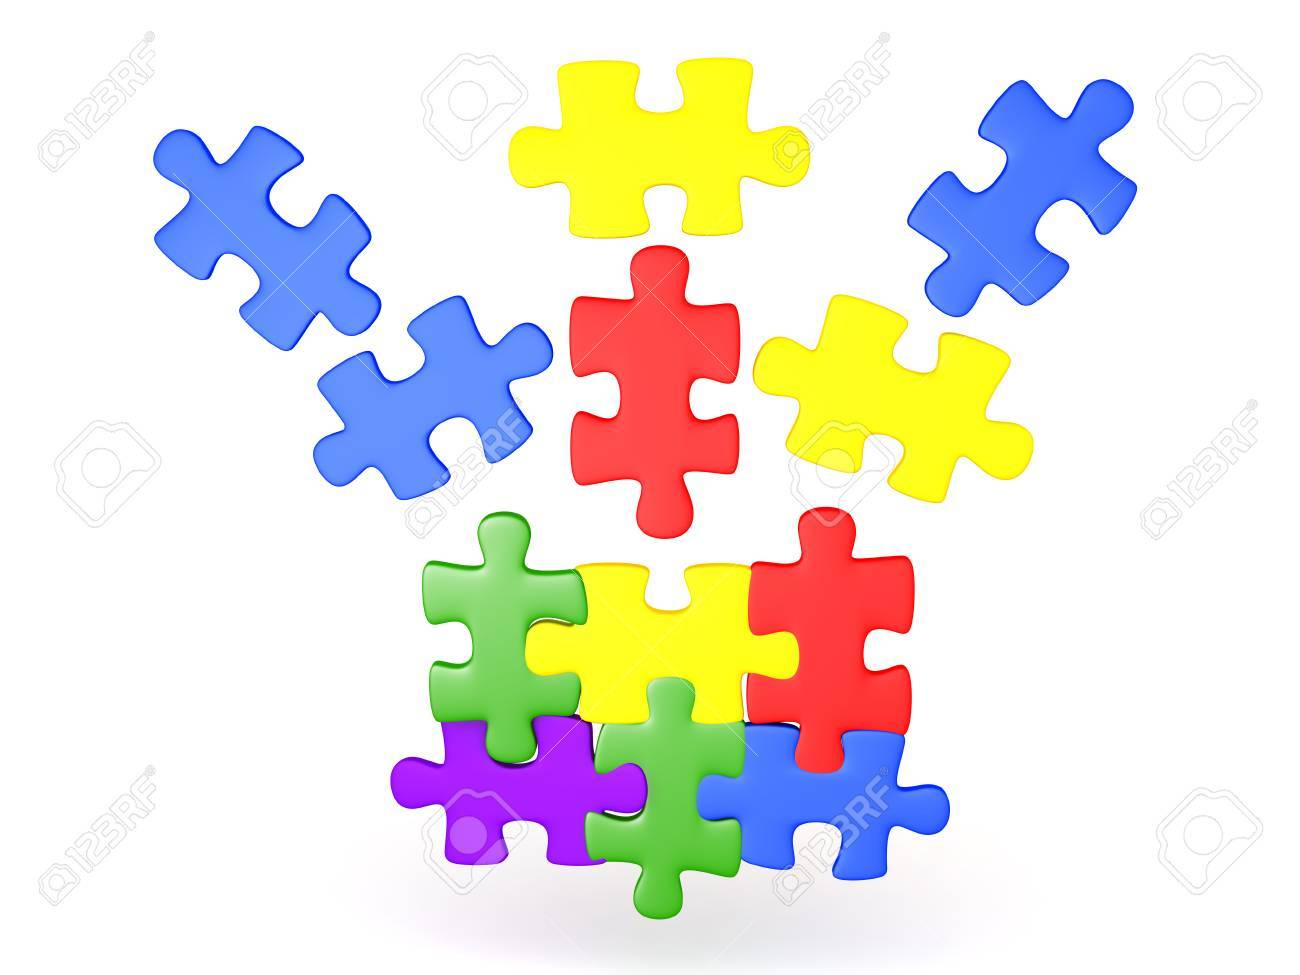 3D Illustration Of Jigsaw Puzzle Pieces Falling Into Place The Are Shiny And Colorful